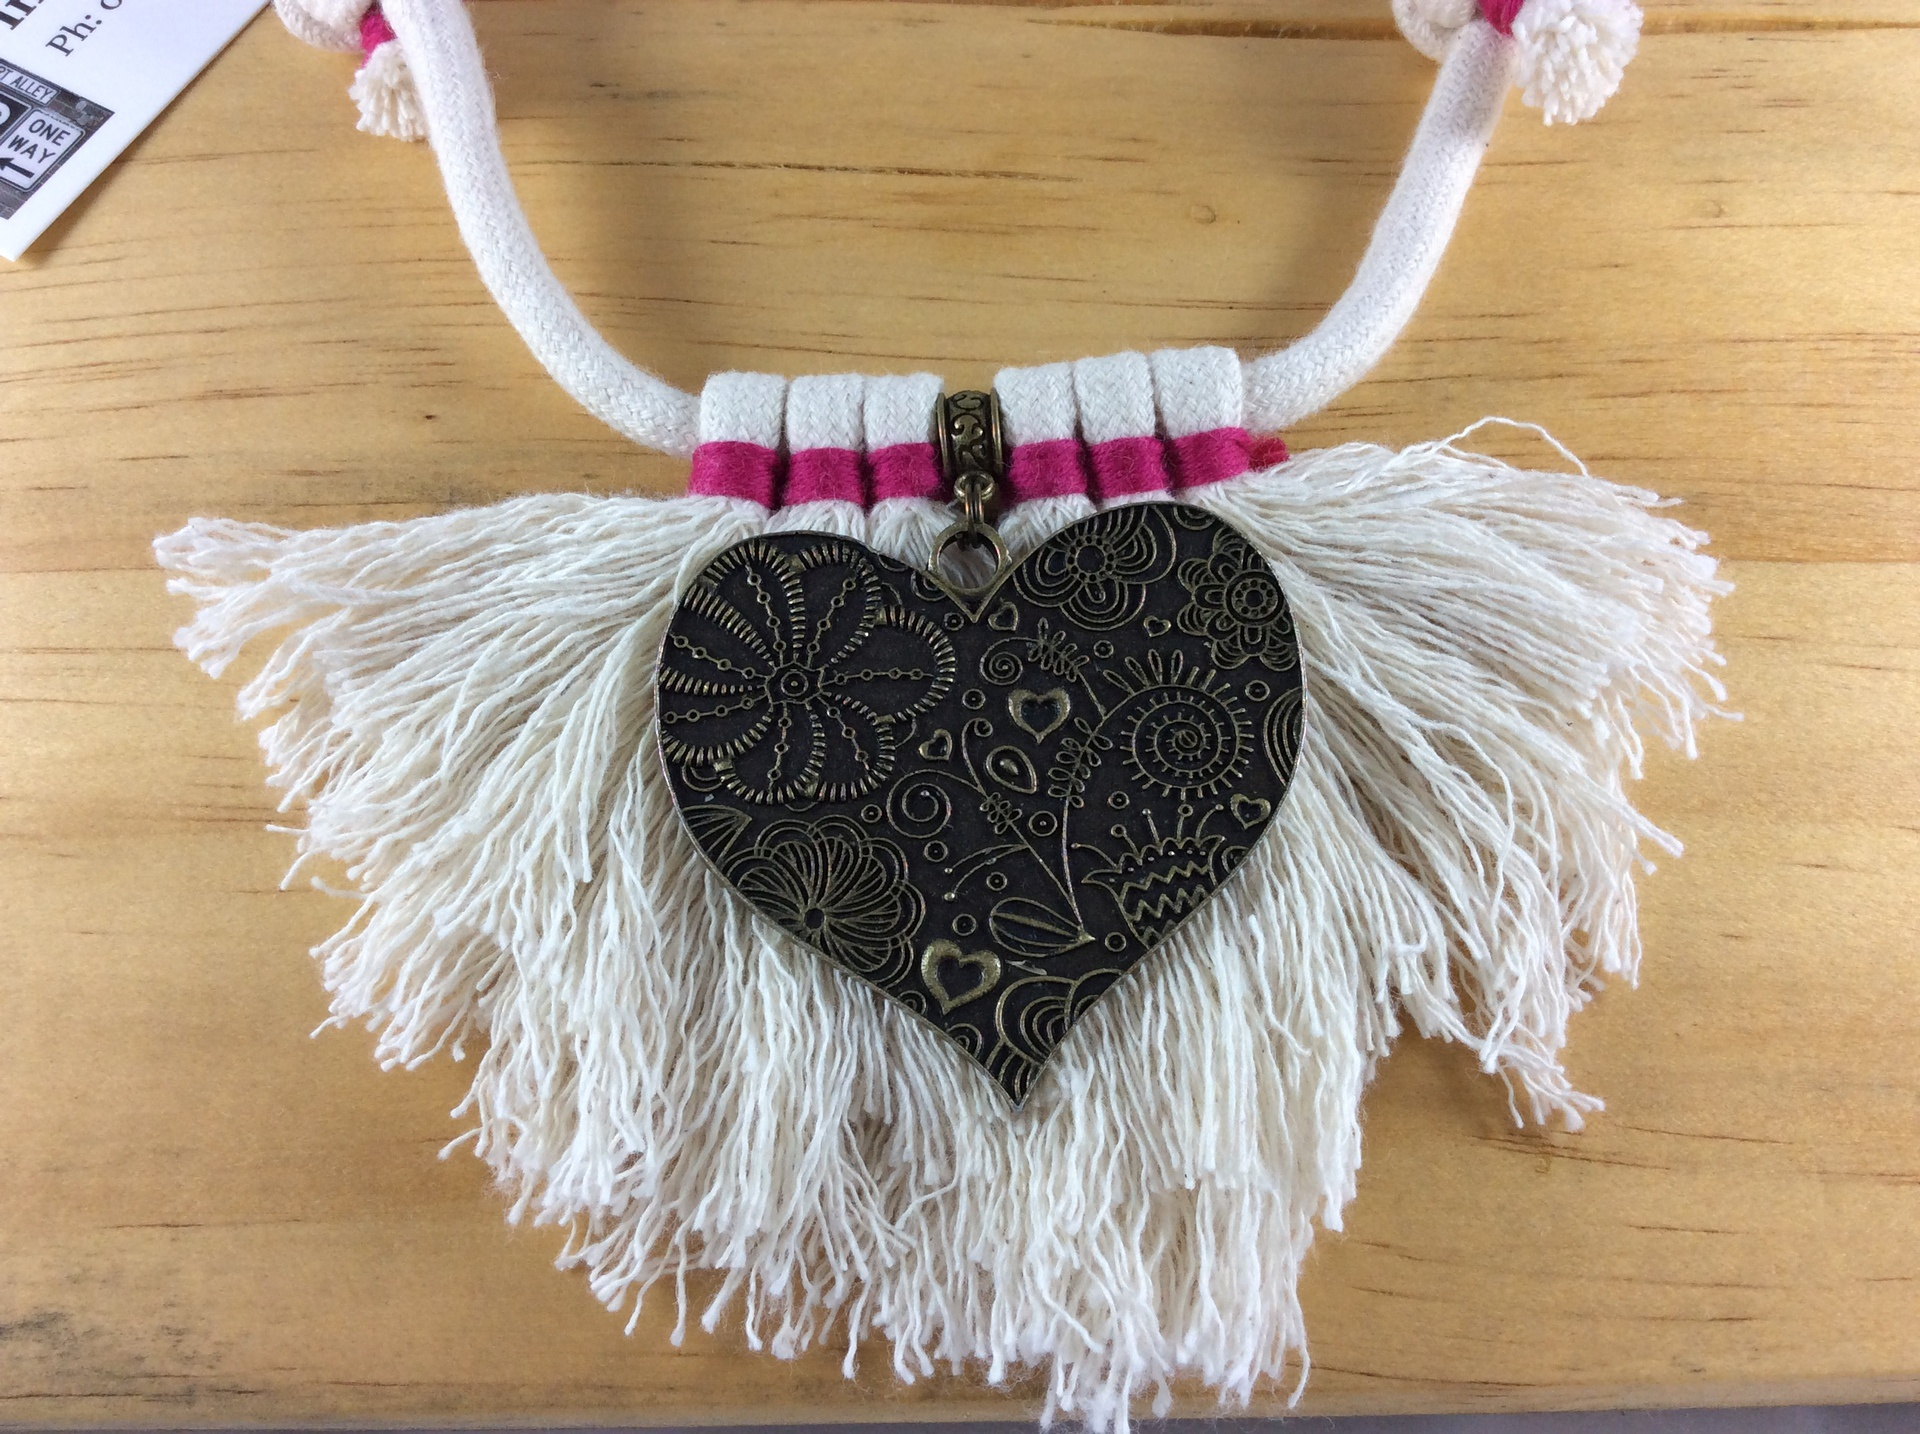 Syx Frayed Lines 'Long Fray' Frayed Cotton Necklace in Pink Yarrow with Solid Heart Accent